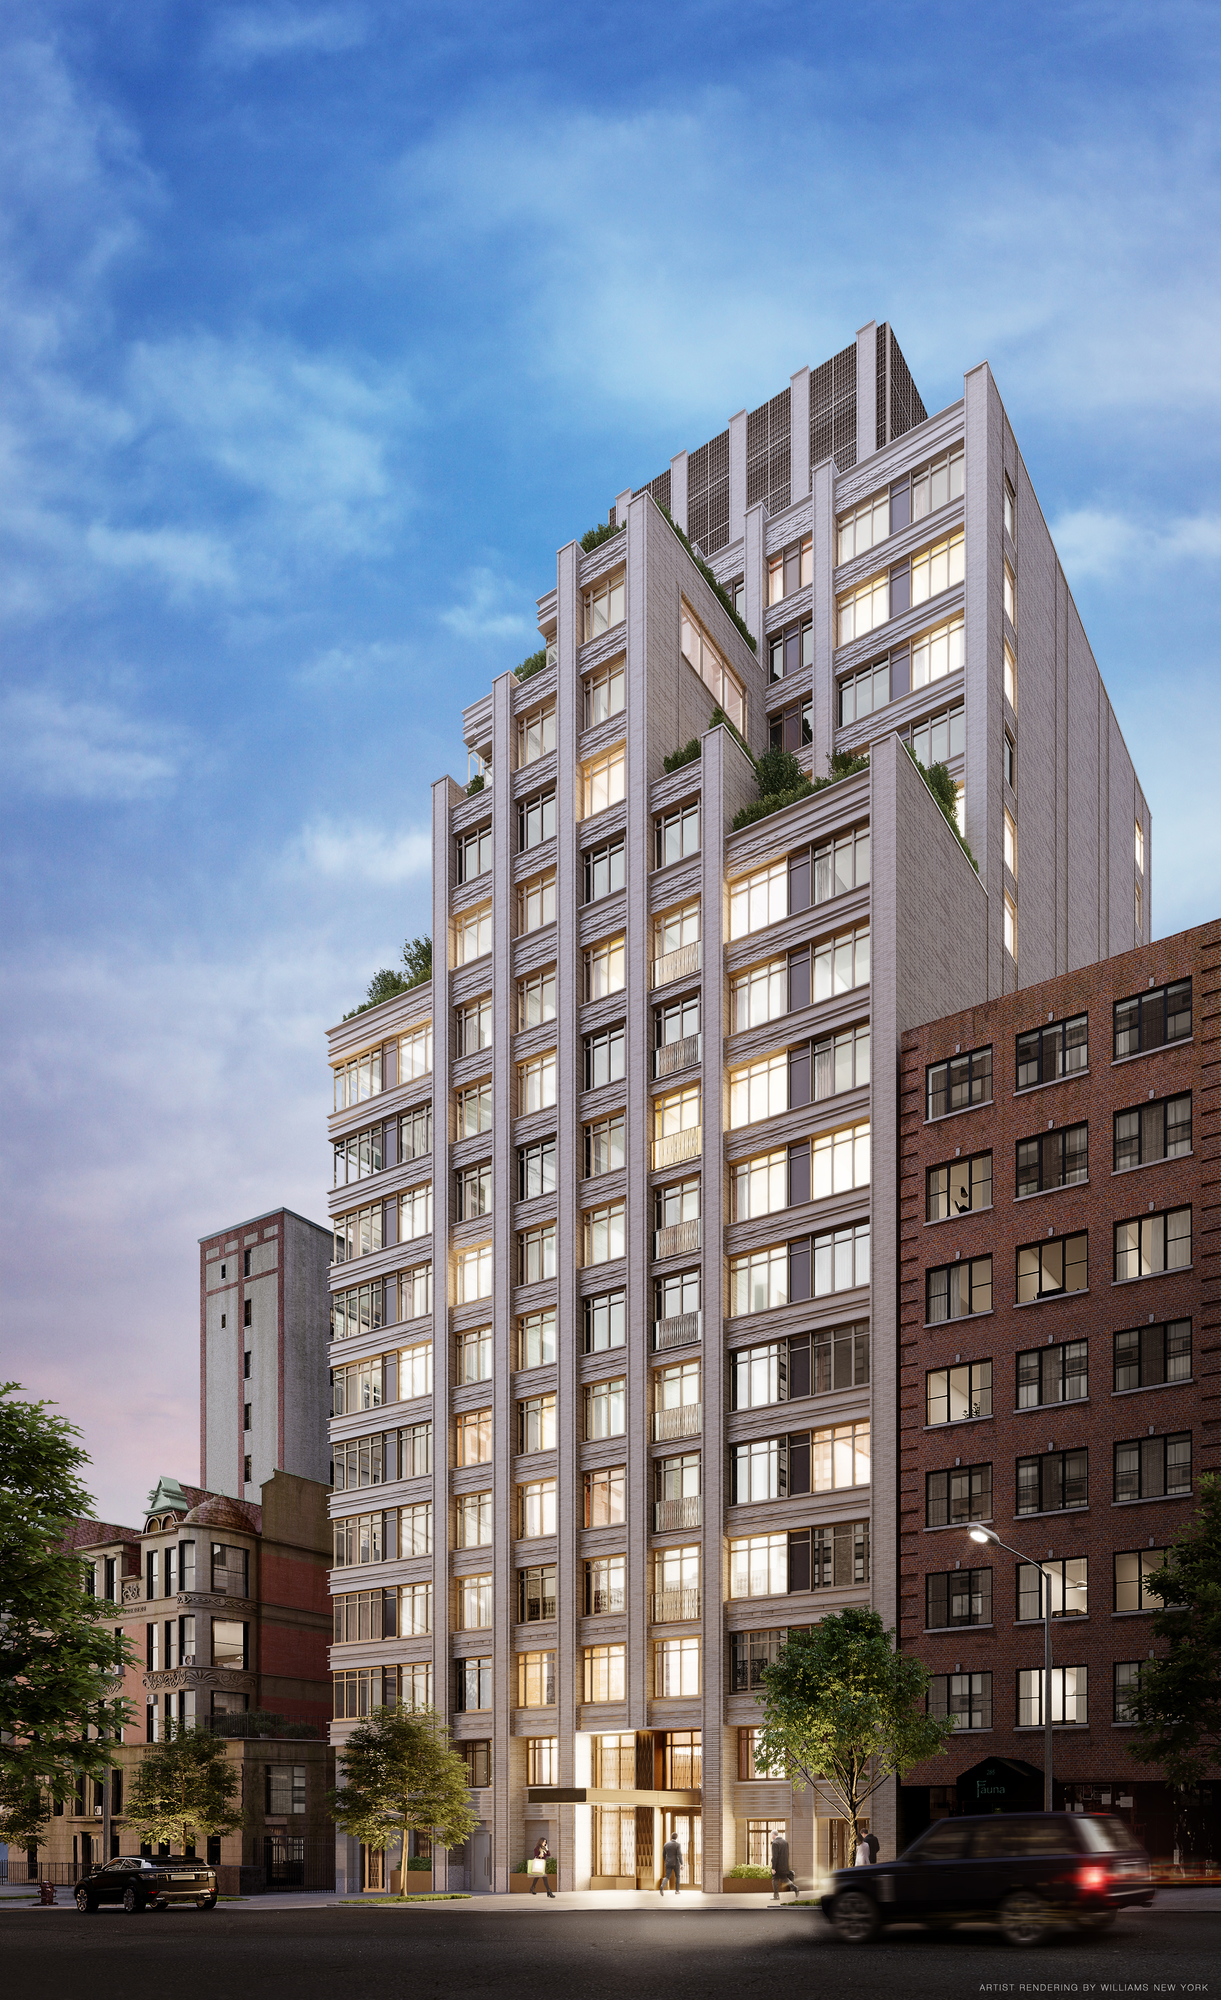 Excavation Underway at The Chamberlain, Located at 269 West 87th